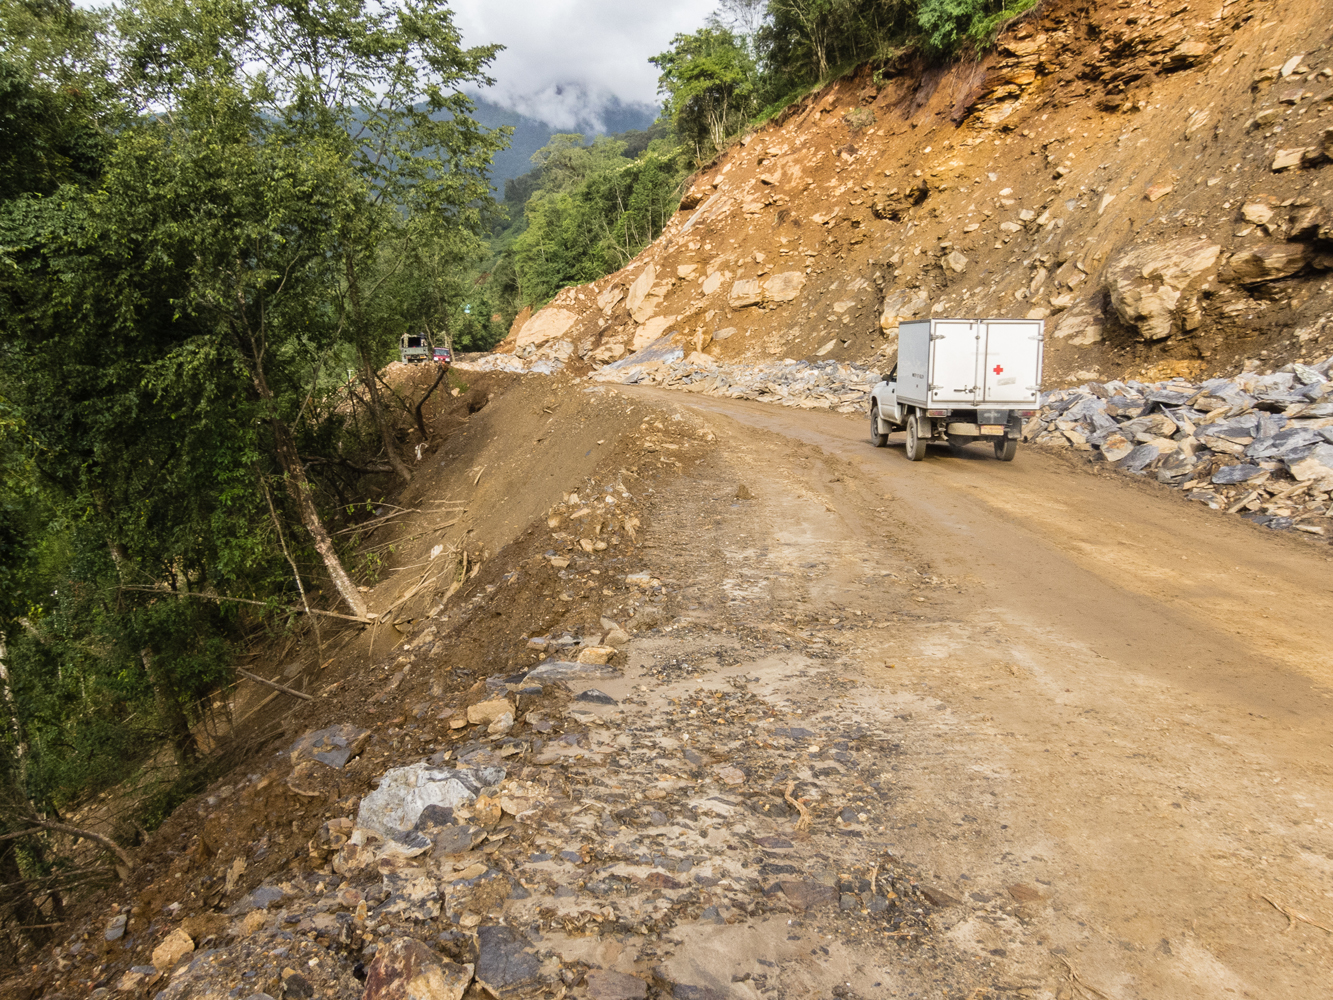 One of Bhutan's infamous roads